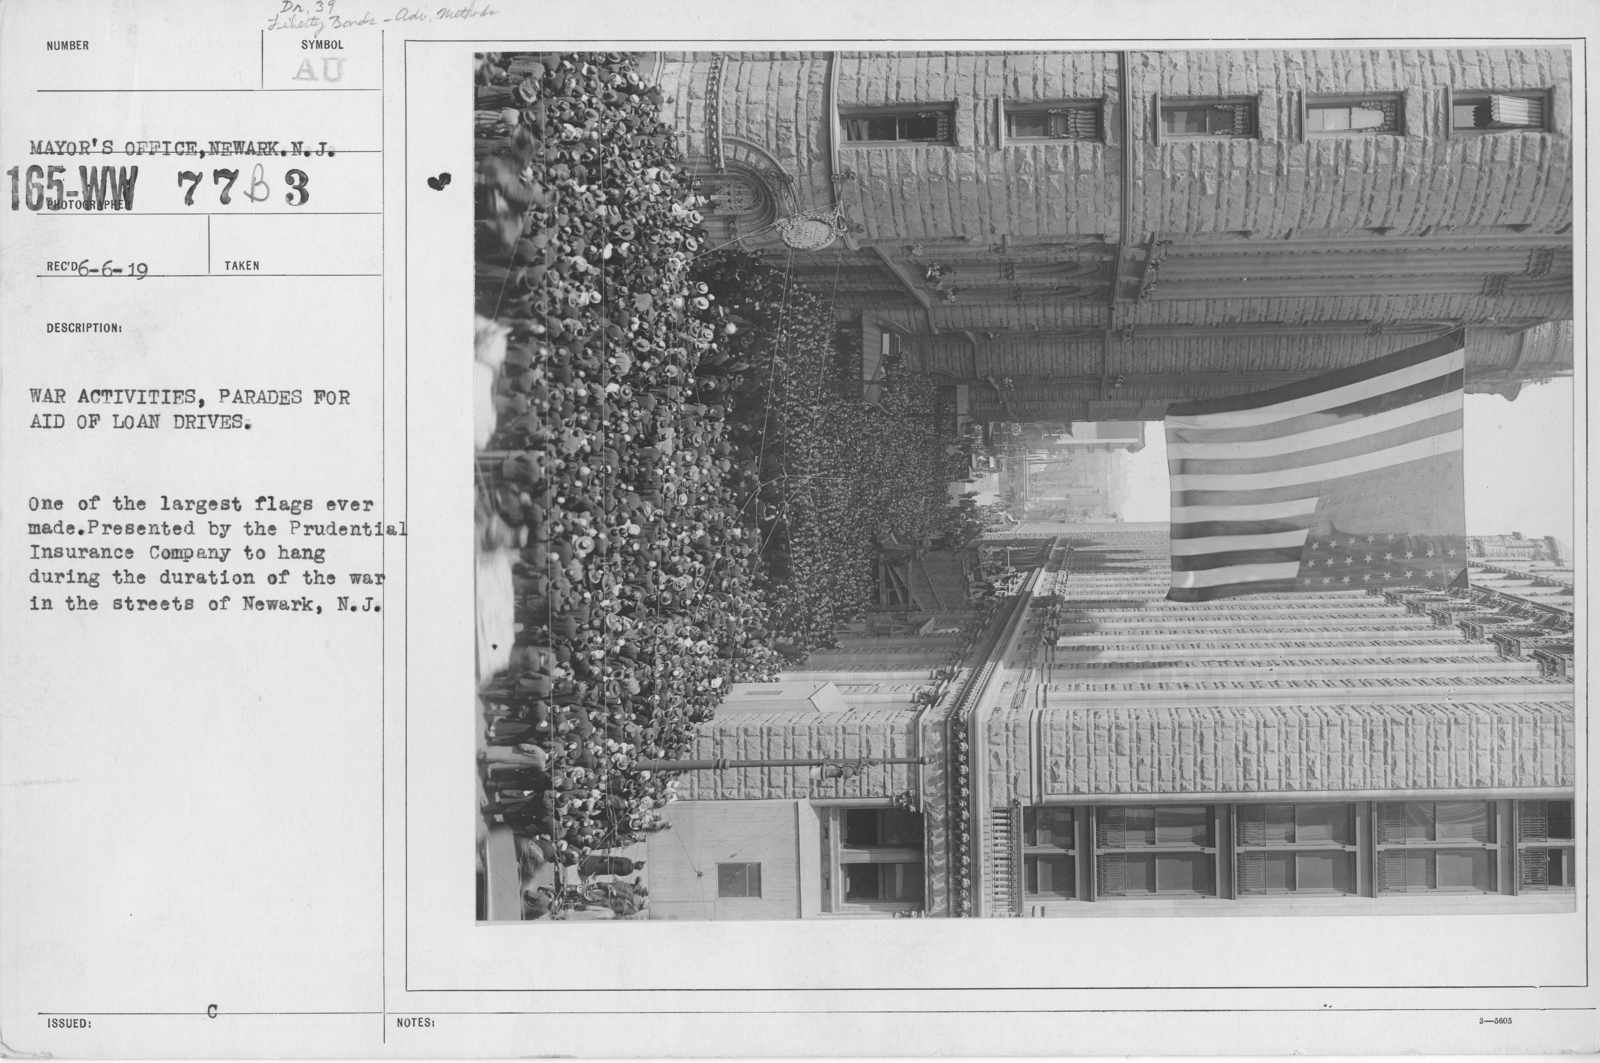 Ceremonies - New Jersey (Ships on the Hudson River) - War activities, parades for aid of loan drives. One of the largest flags ever made. Presented by the Prudential Insurance Company to hang during the duration of the war in the streets of Newark, N.J